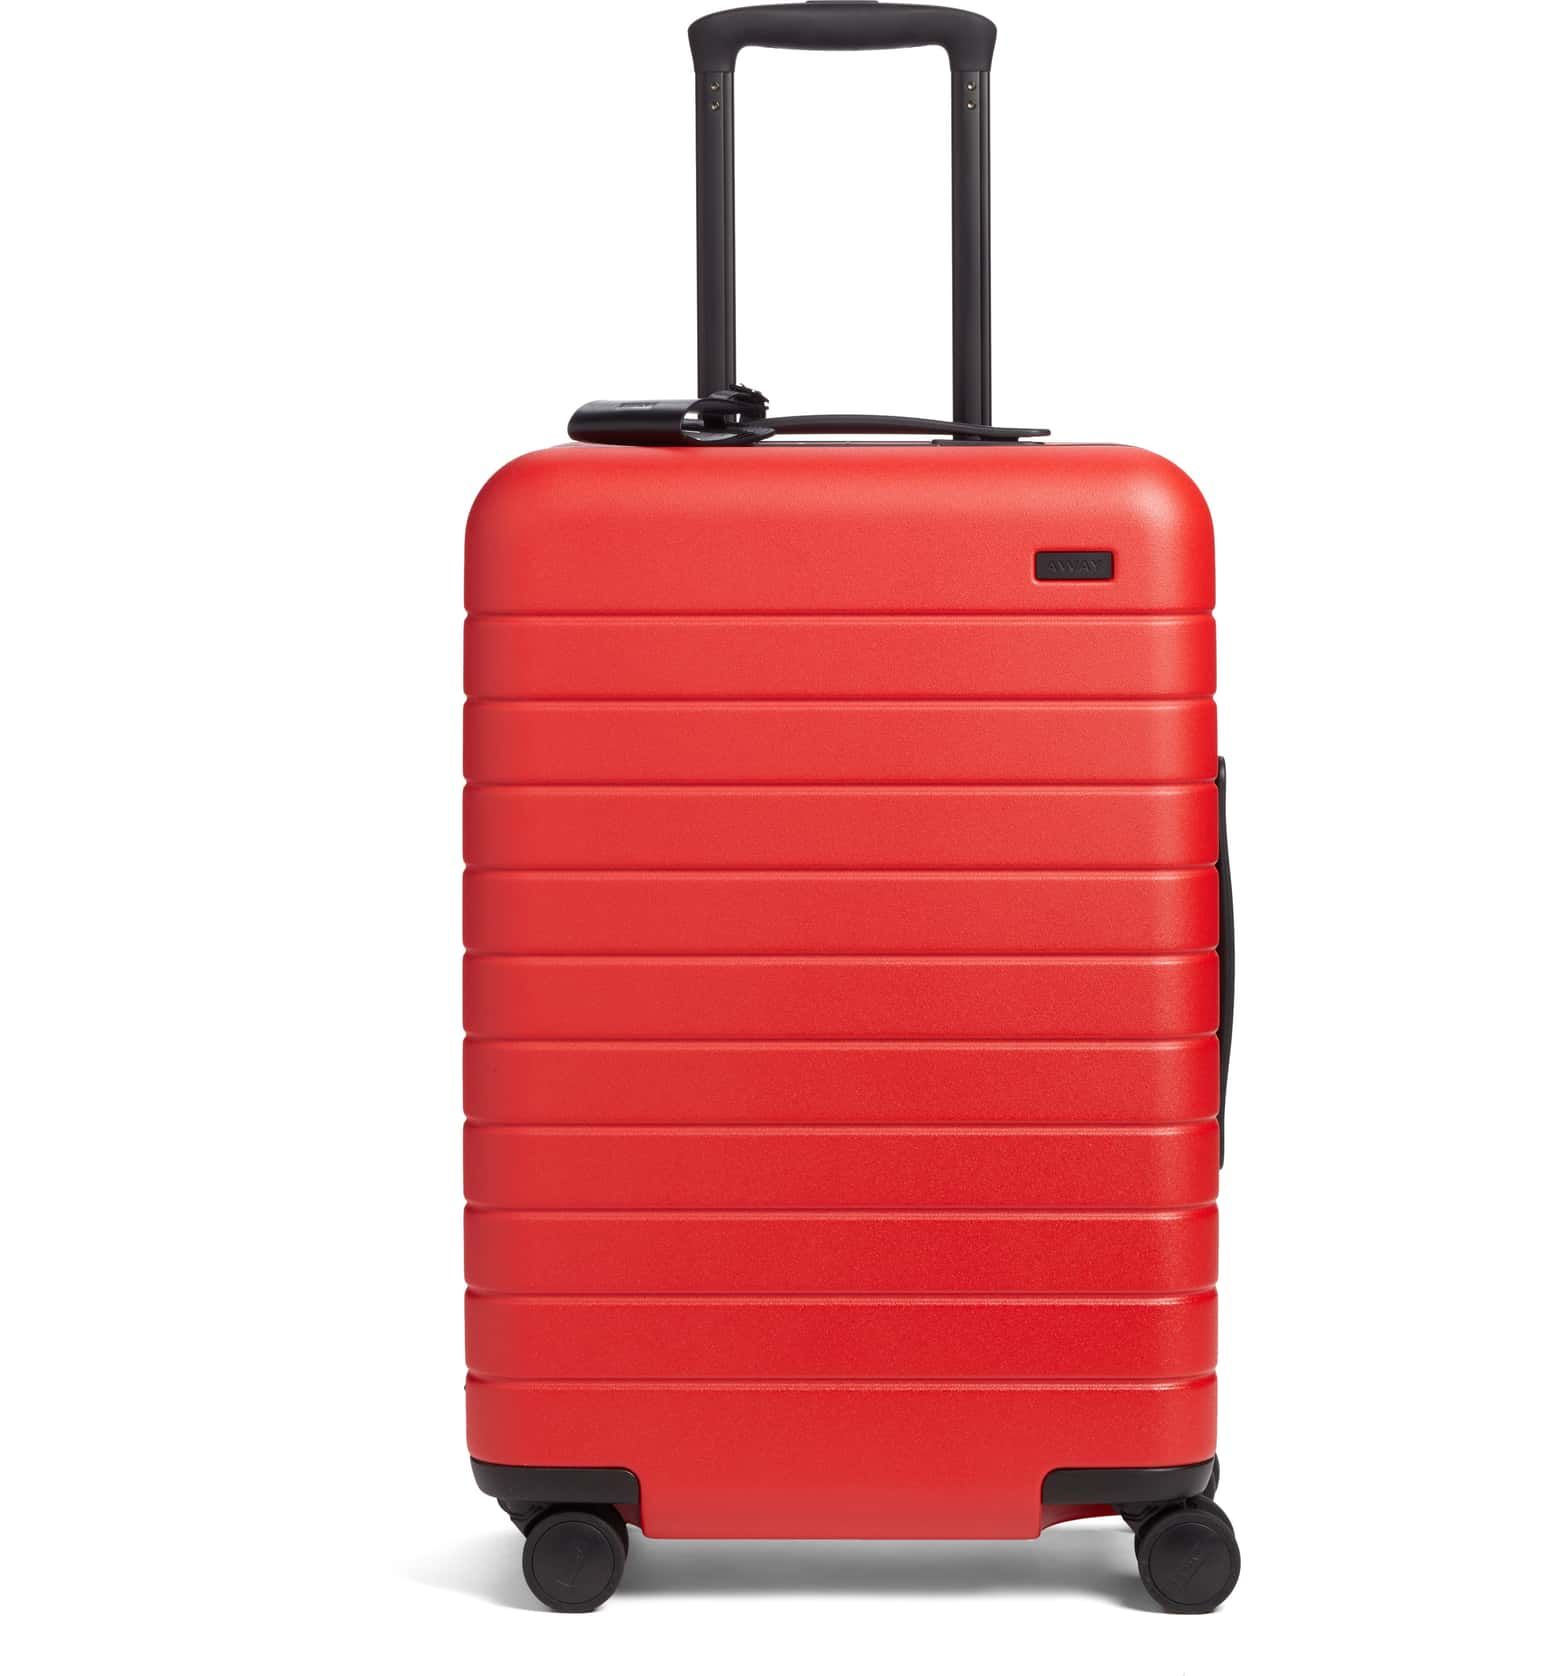 Celeb-Loved Luggage Brand at Nordstrom: Away The Bigger Carry-On Hard Shell Suitcase in Red